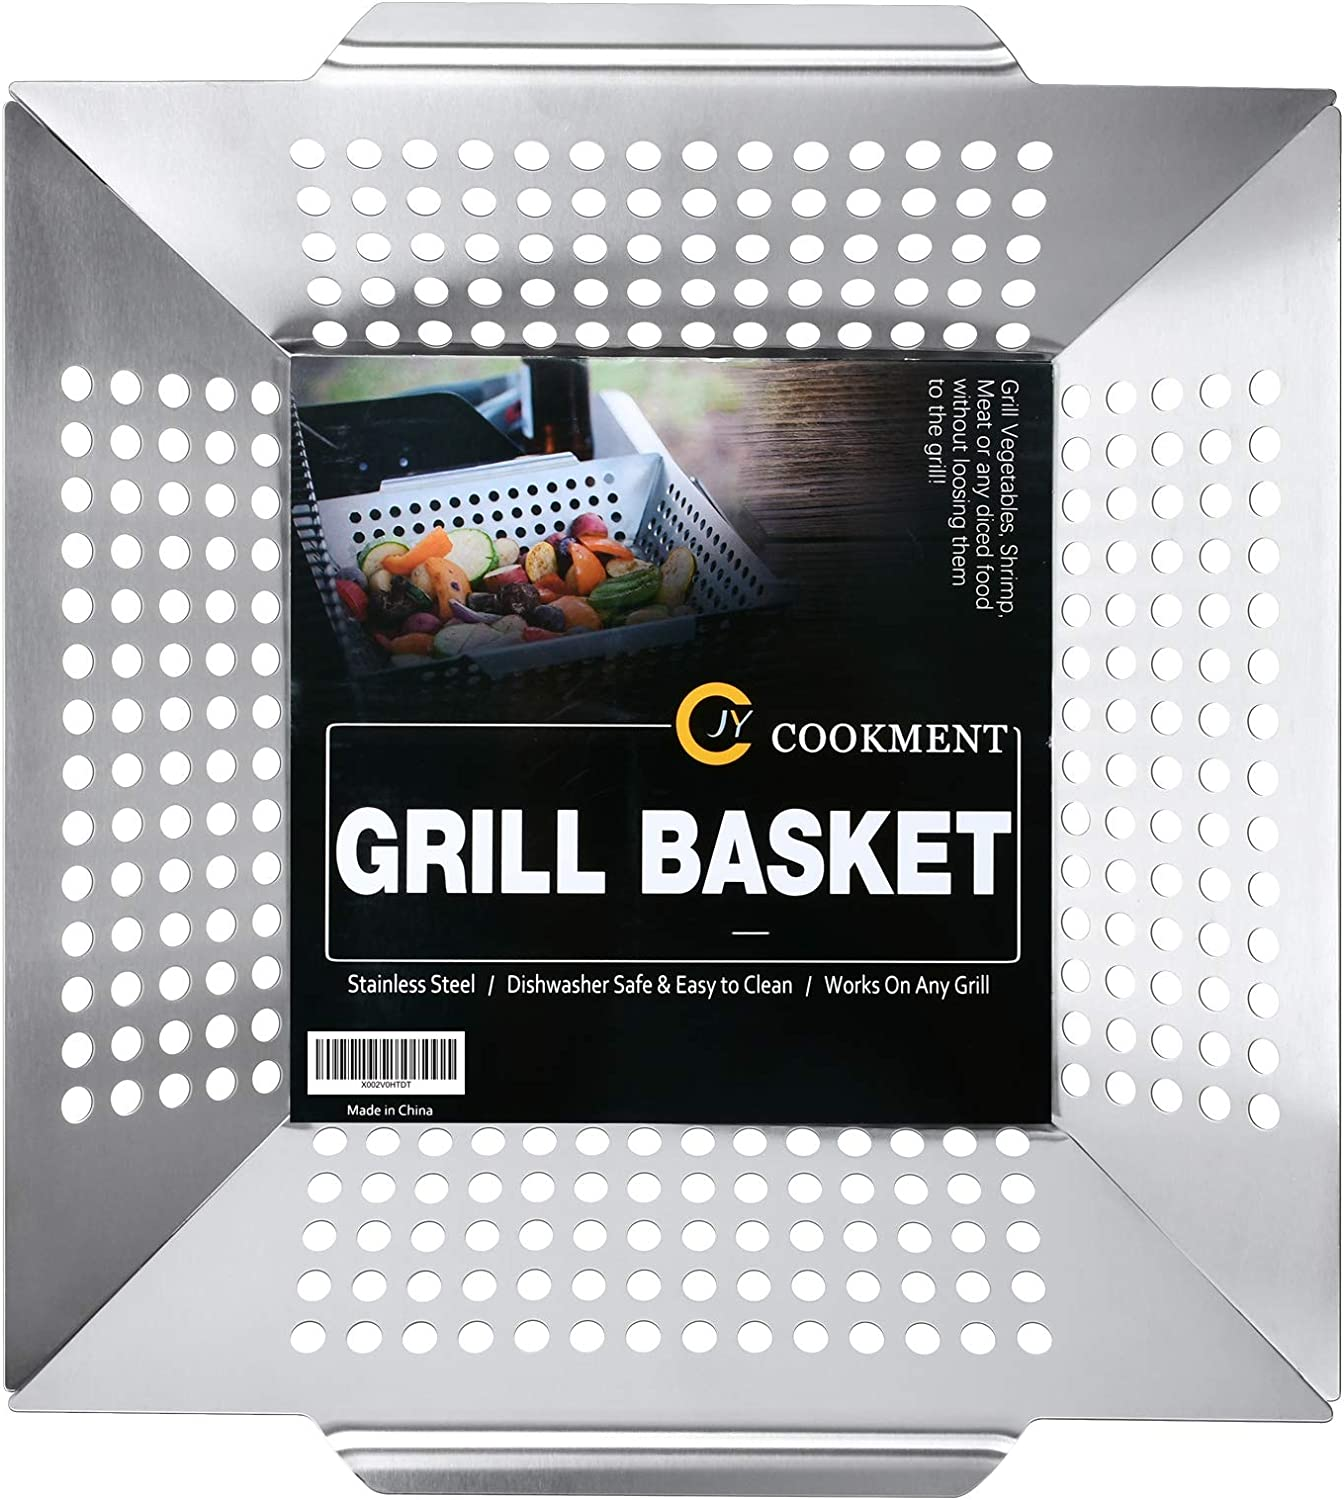 JY COOKMENT Grill Basket- Stainless Steel Grilling Basket for Indoor and Outdoor Use, Heavy Duty Vegetables Grill Basket for Veggies and Kabob, Suitable for All Grills, Dishwasher Safe : Patio, Lawn & Garden